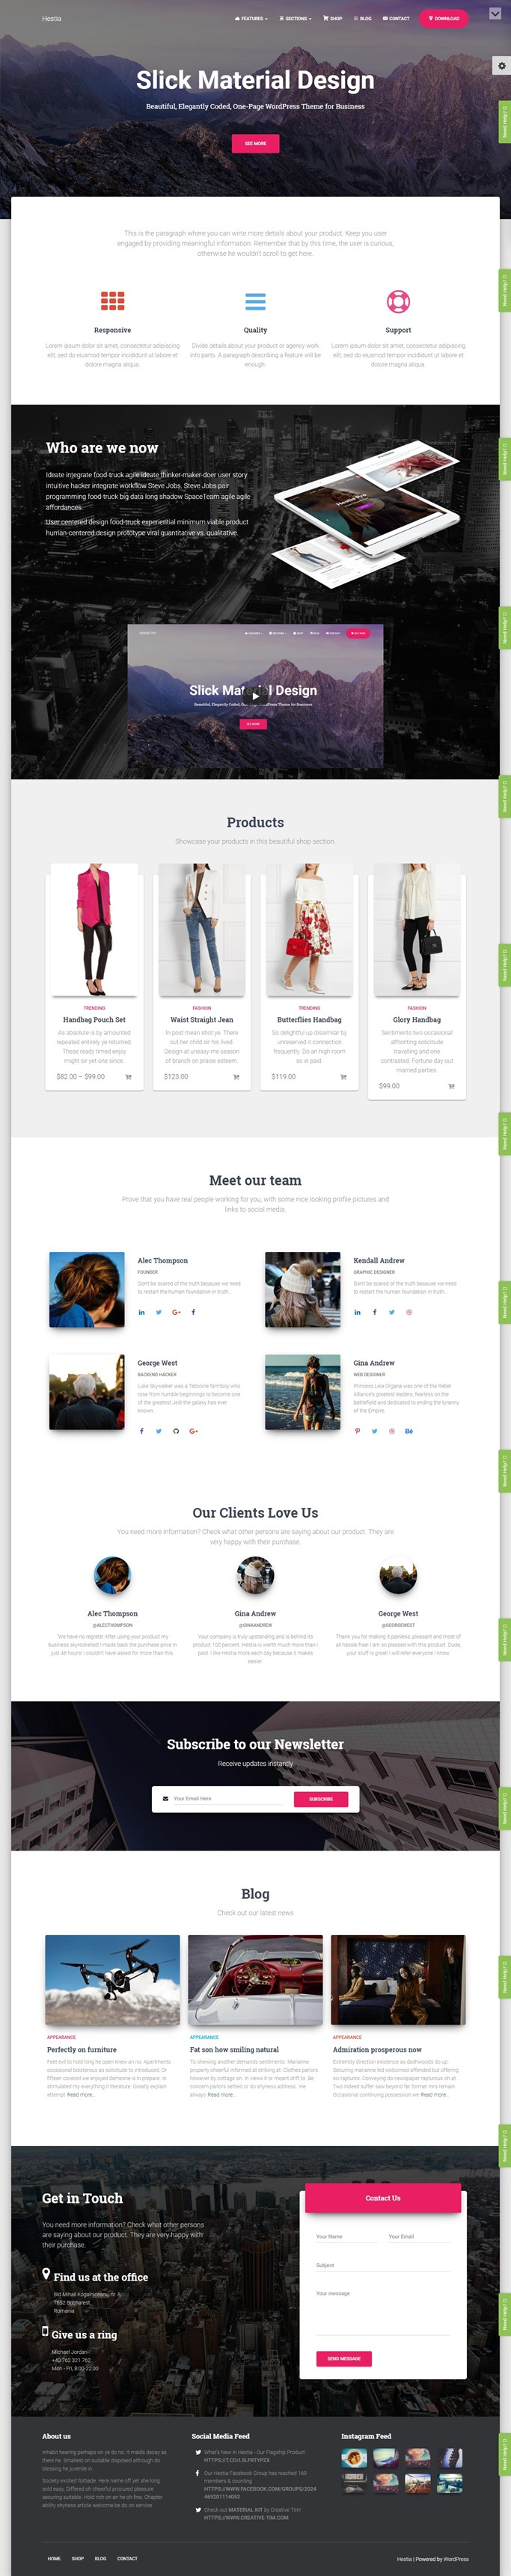 Screenshot of Hestia, Free WordPress Theme